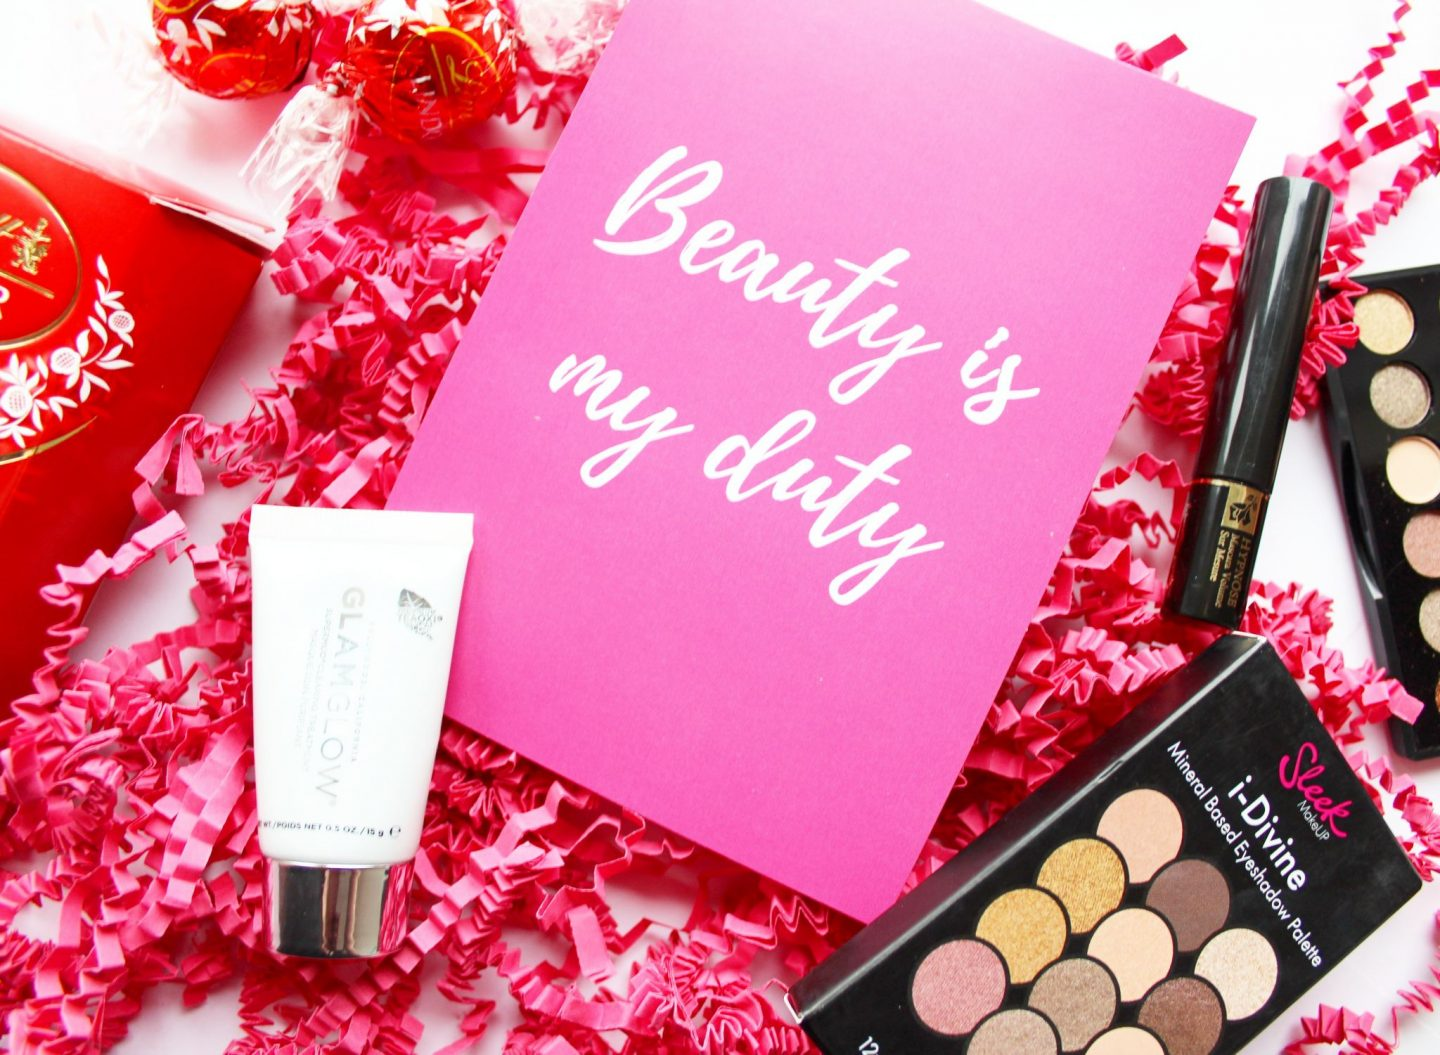 Build Your Own Beauty Box with Latest in Beauty